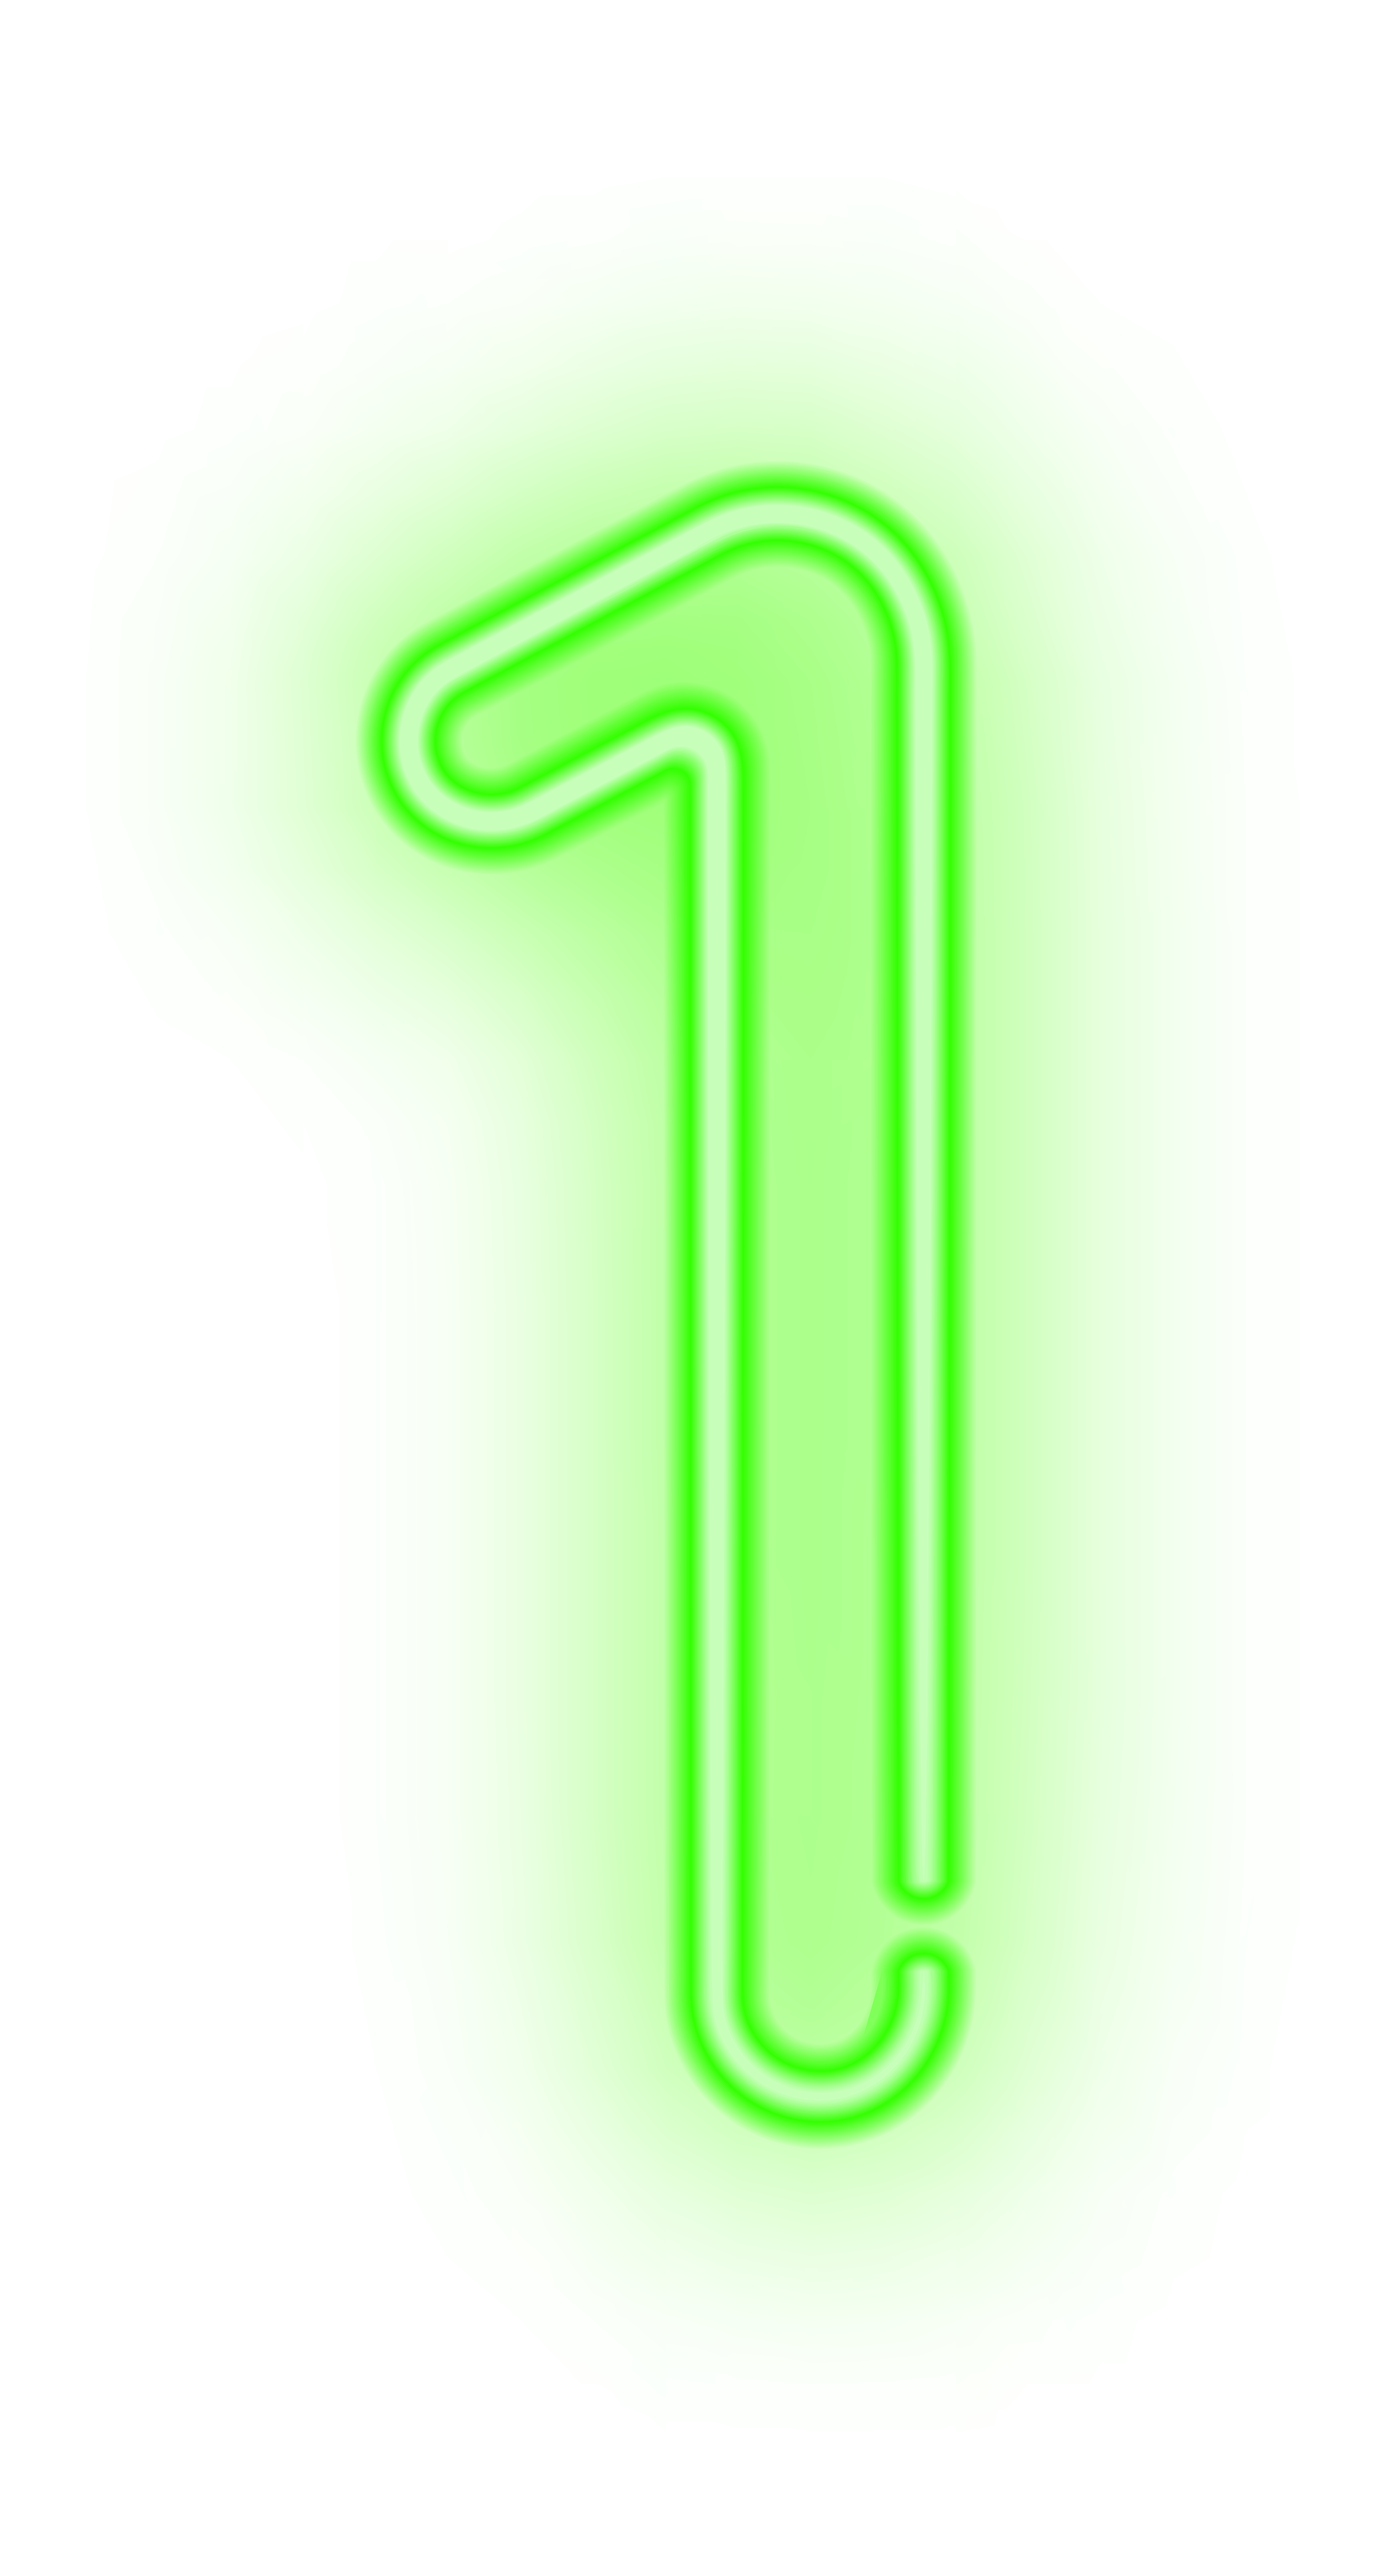 One Neon Green PNG Clip Art Image.